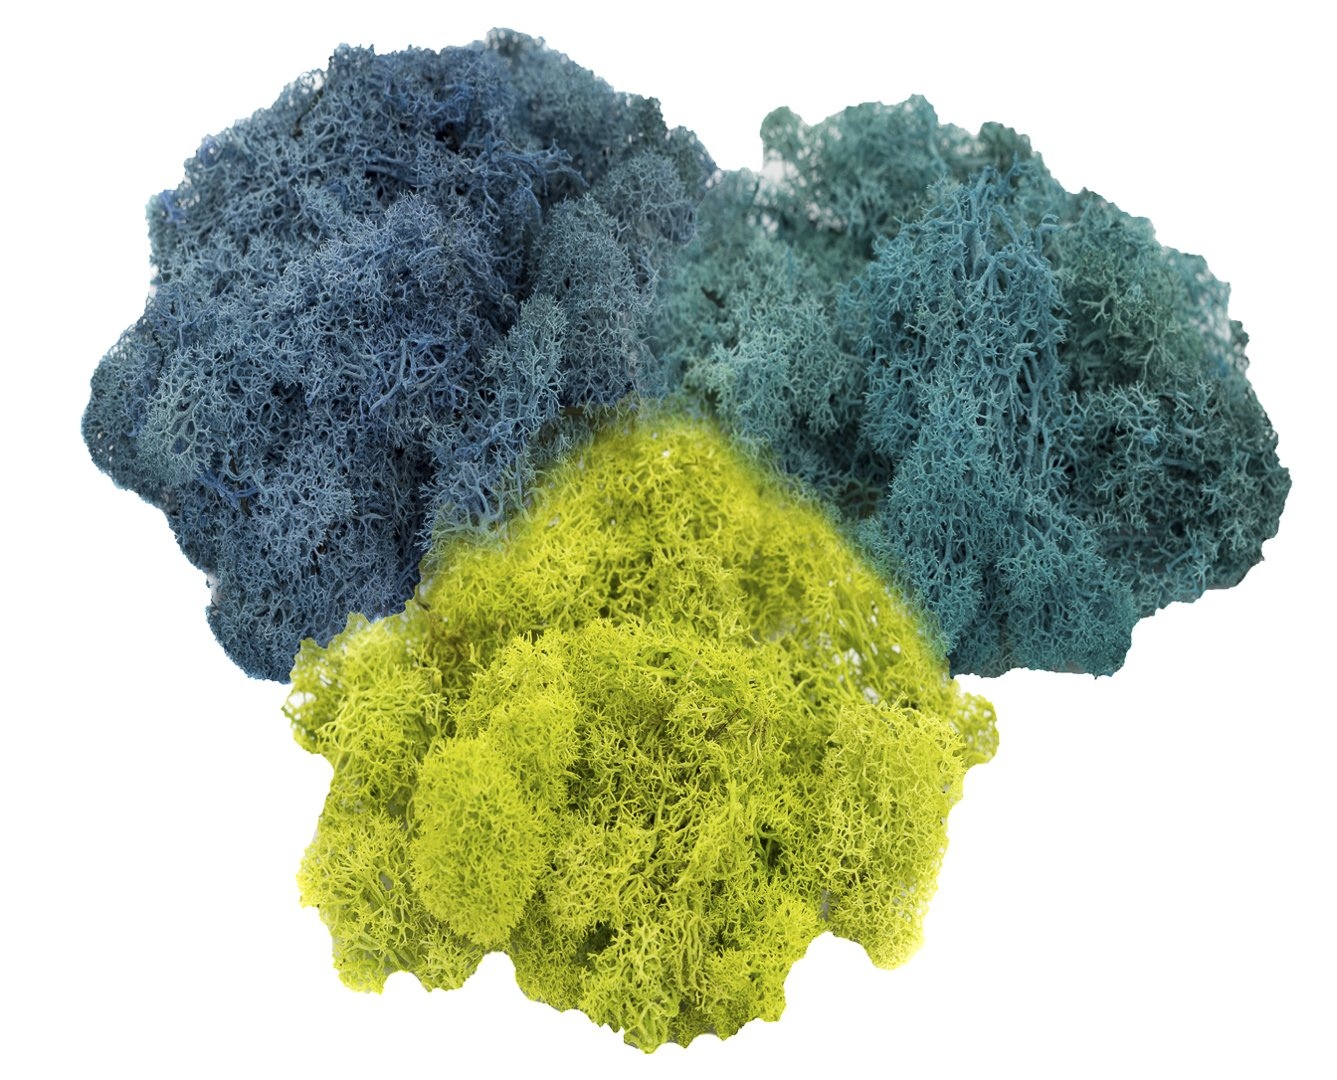 Reindeer Moss Preserved | Tri-Color Moss Assortment | Aqua, Lime Green, Turquoise Moss - 3oz | For Fairy Gardens, Terrariums, or any Craft or Floral Project | Nautical Crush Trading TM